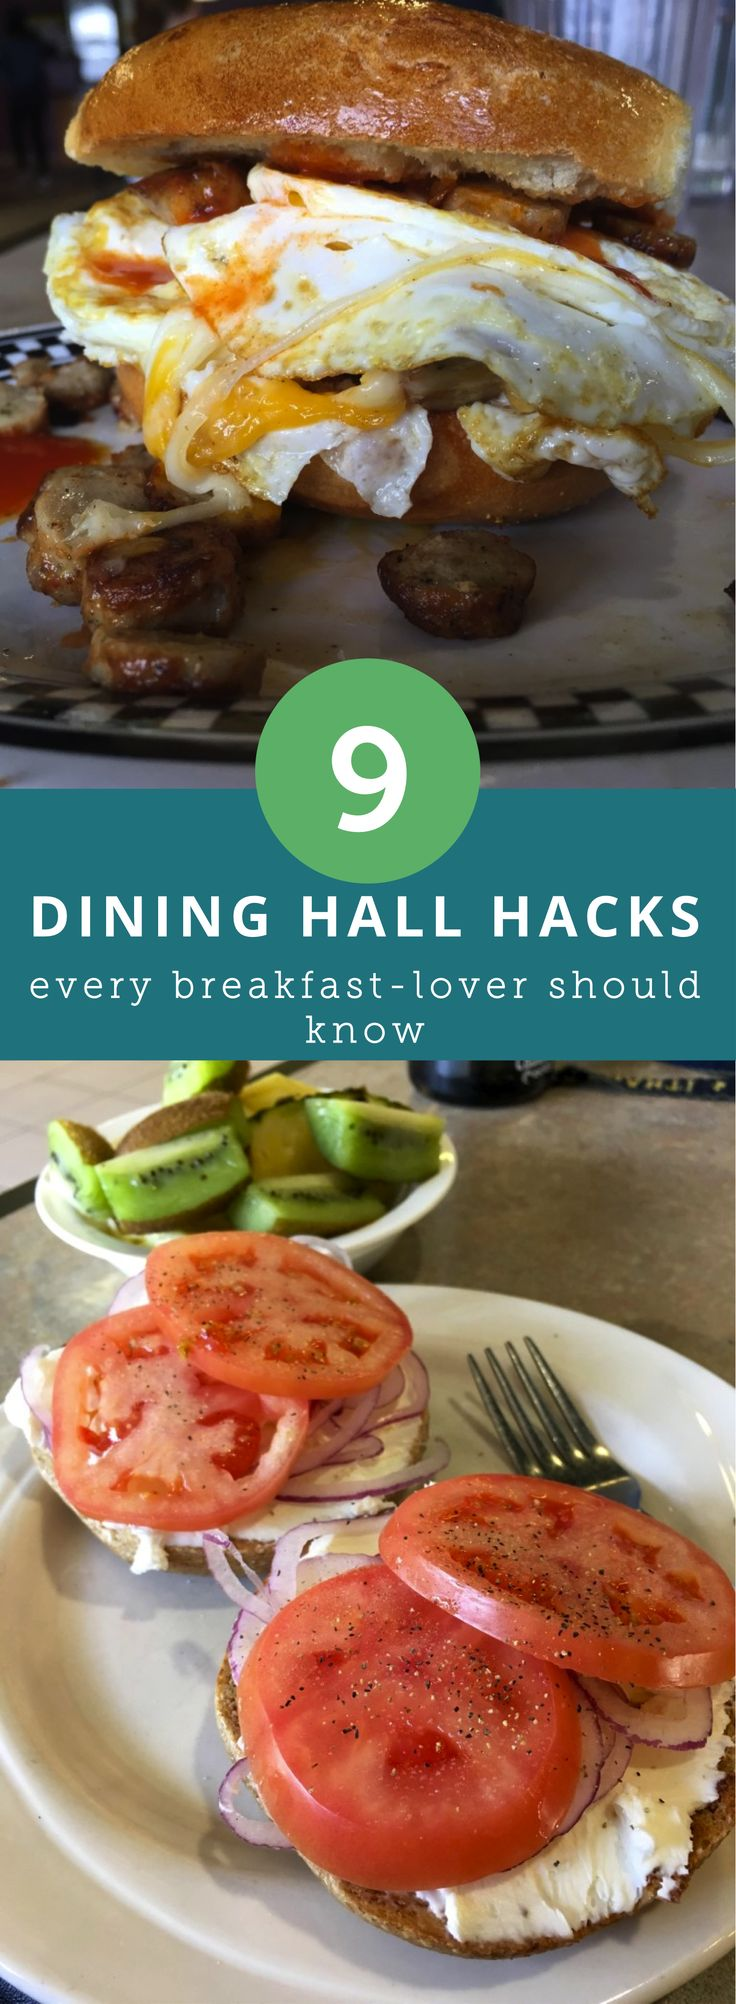 9 Dining Hall Hacks Every Breakfast-Lover Should Know